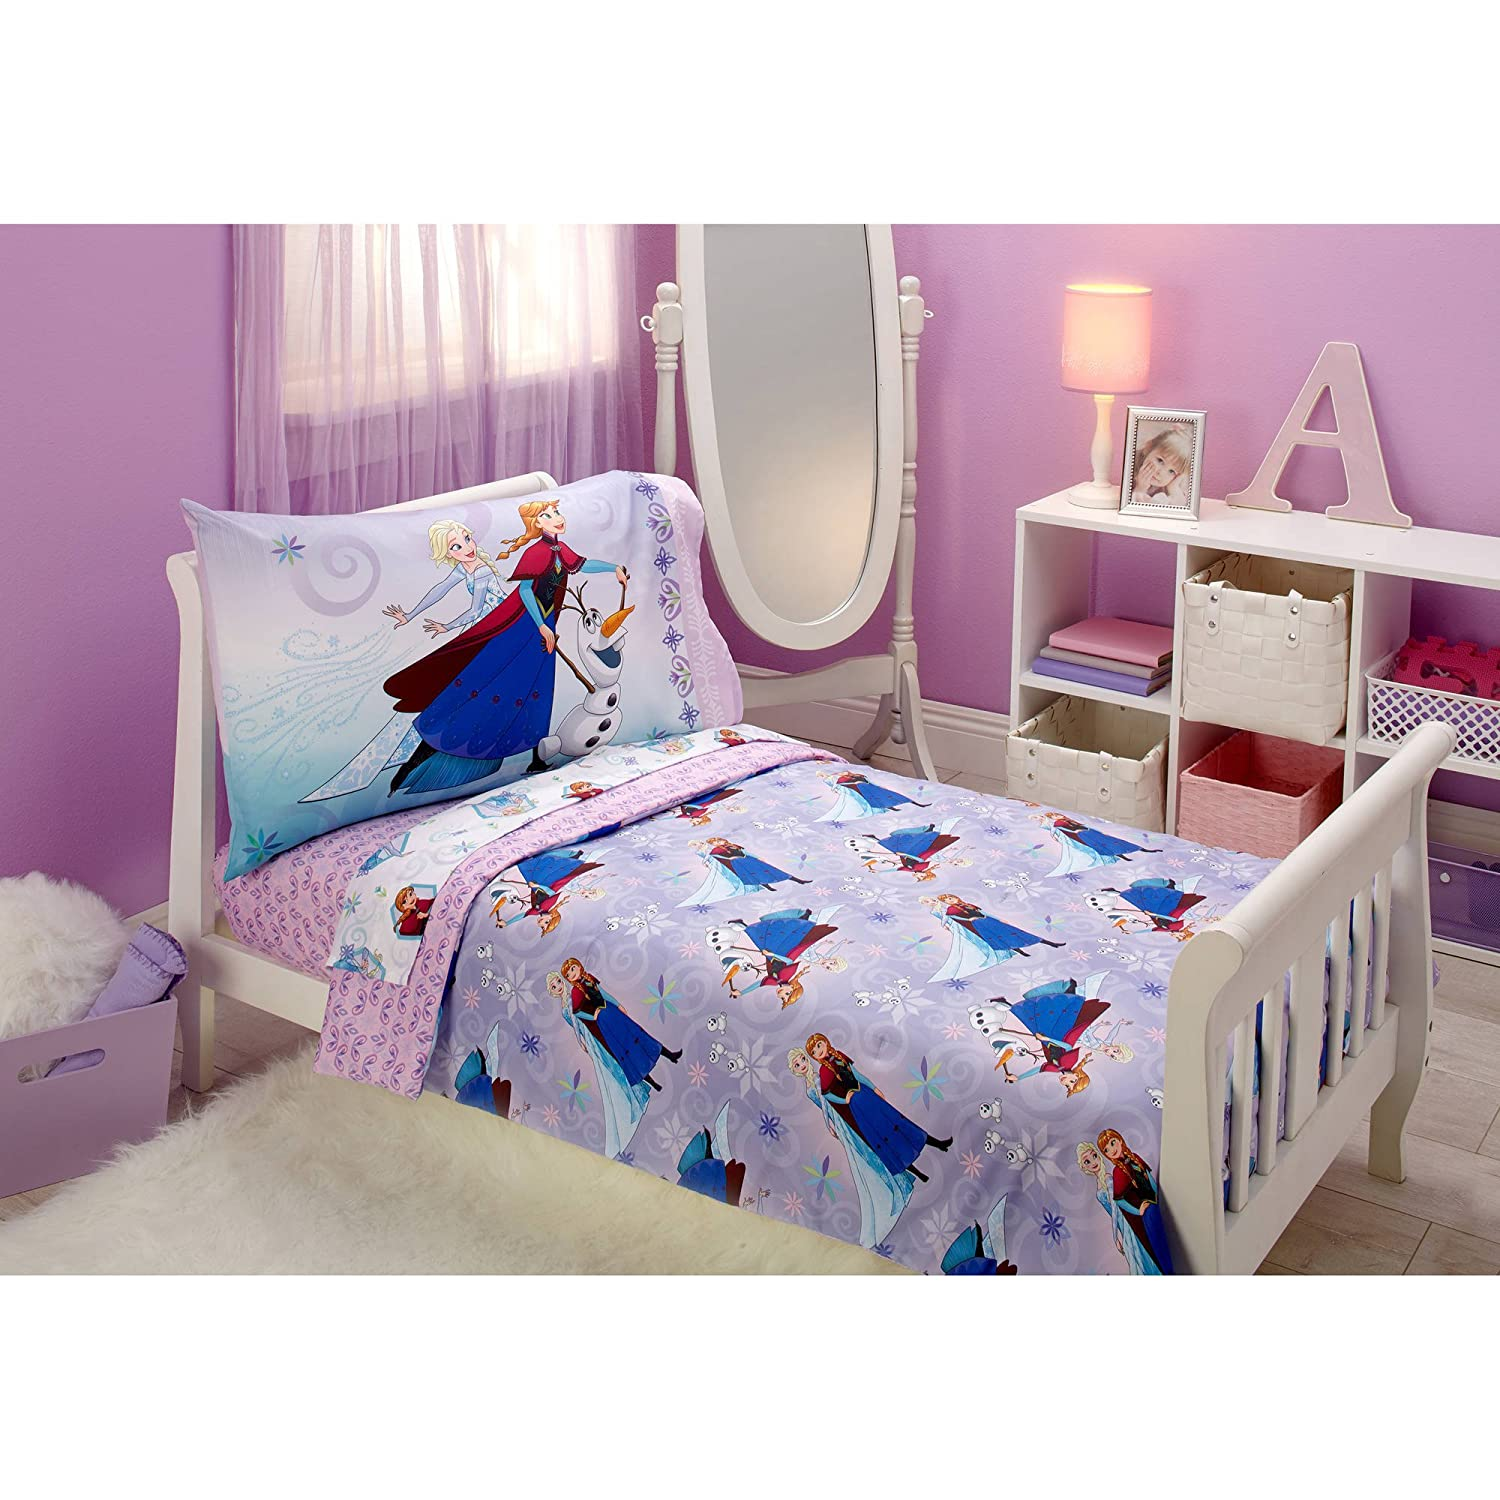 Disney Frozen Unleash the Magic 4pc Toddler Bedding Set - Elsa - Anna - Olaf Crown crafts company